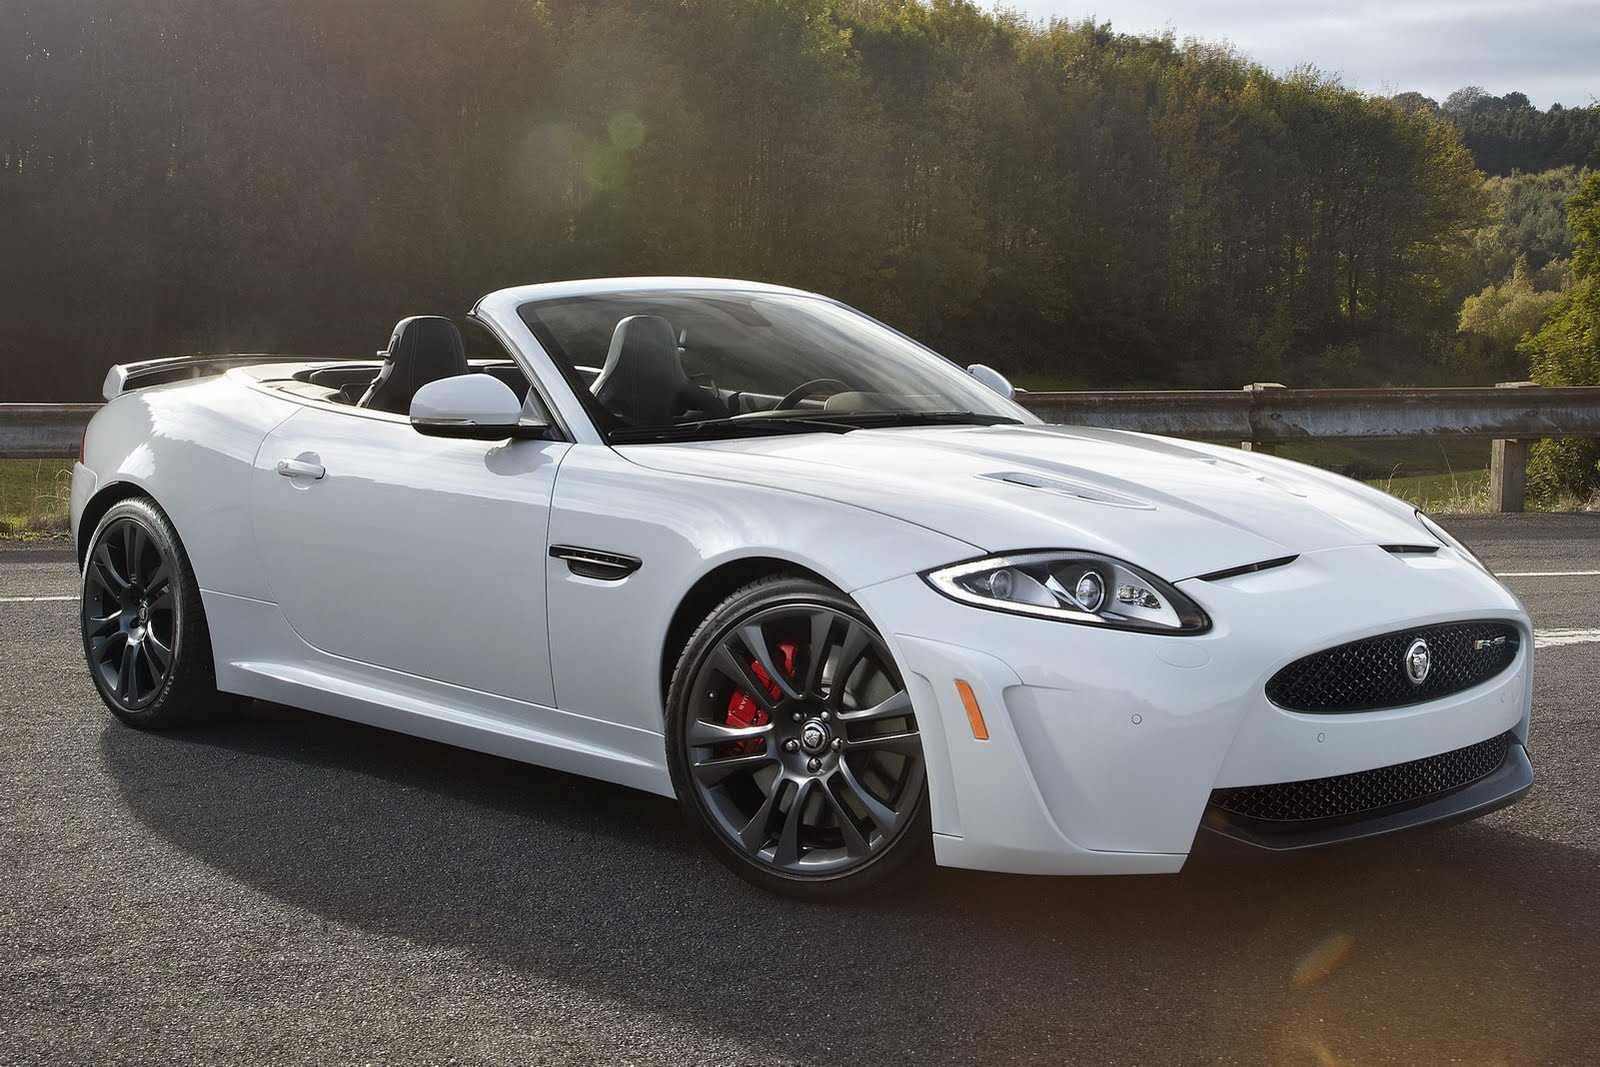 2012 jaguar xkr s convertible price 138 000. Black Bedroom Furniture Sets. Home Design Ideas